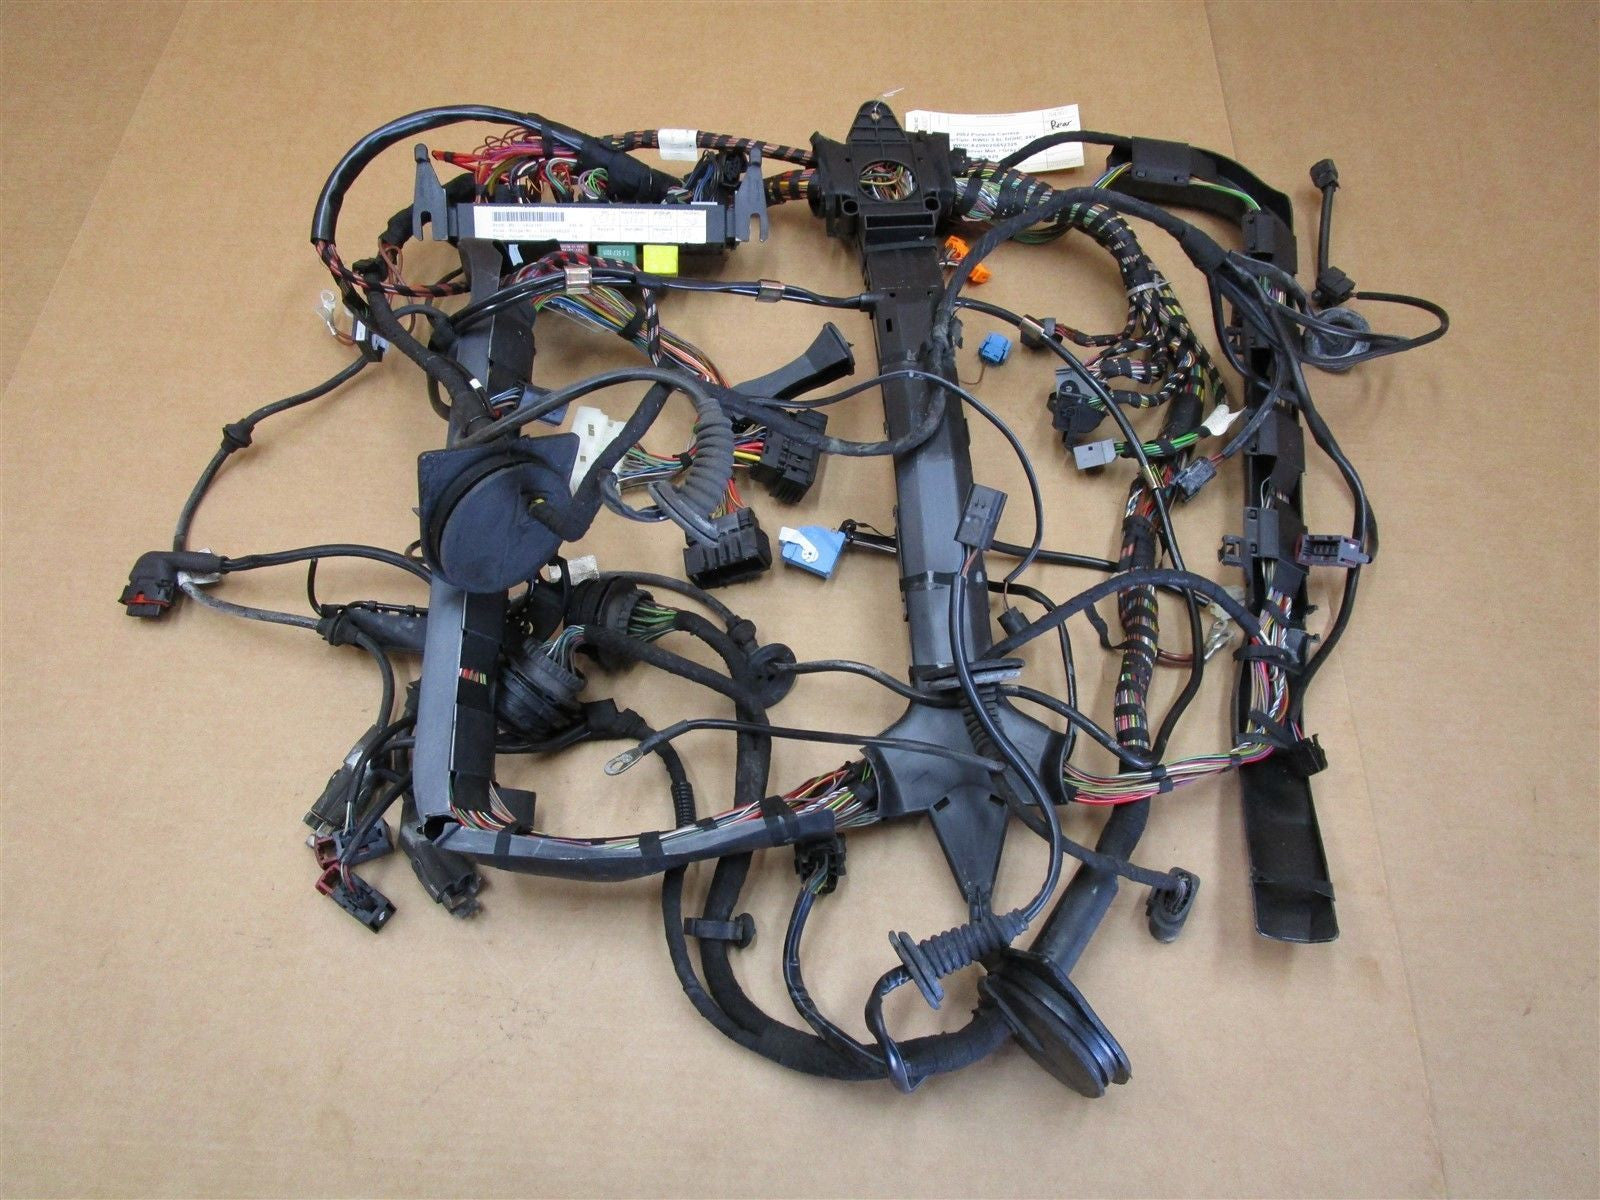 Wiring Harness 1973 Porsche 911 Diagram 1971 Nova Rear Wire 997 Spoiler 02 Carrera 996 Cabrio